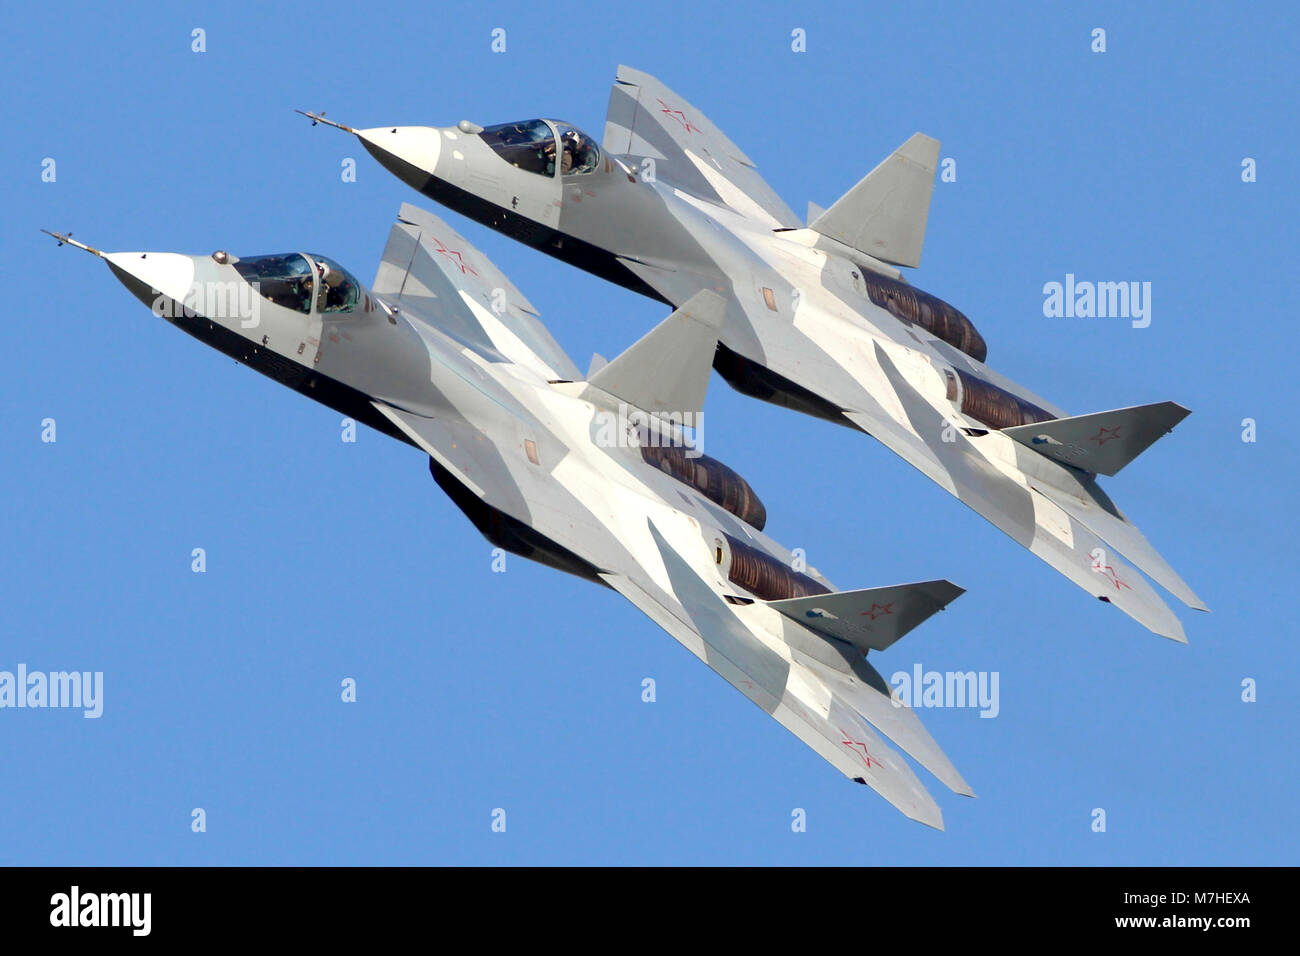 Russian Jet Fighters Stock Photos & Russian Jet Fighters